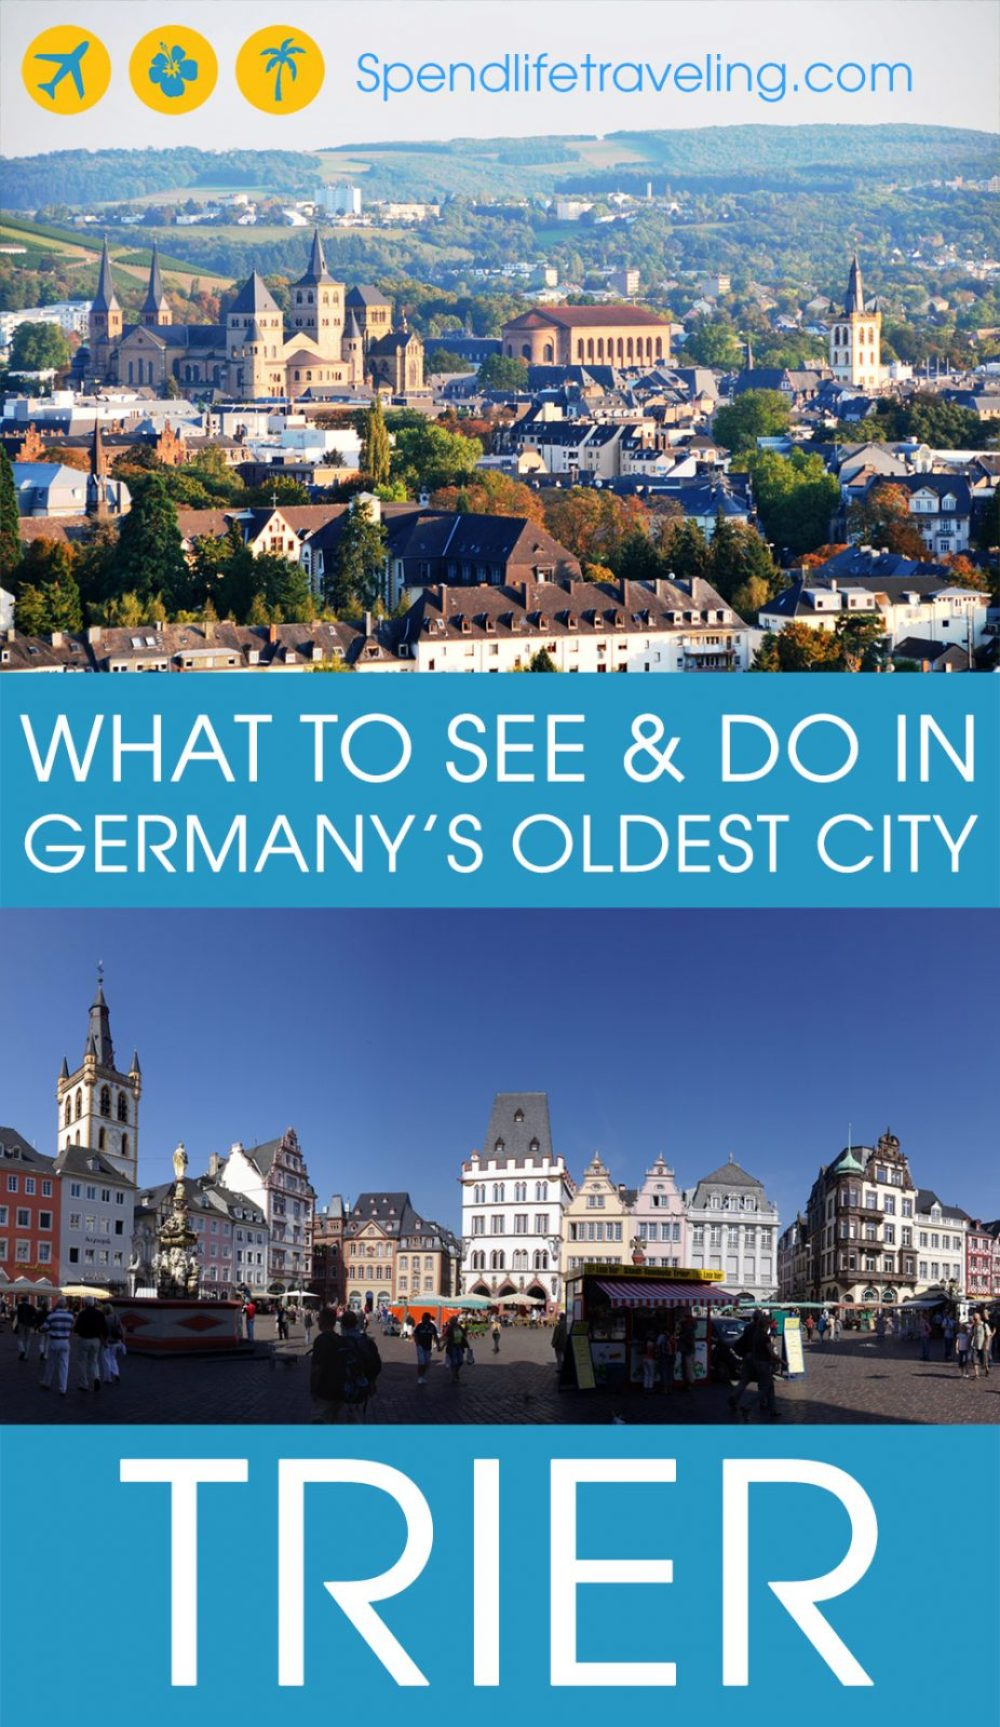 Trier is a beautiful city for anyone who loves history, culture, architecture or just a nice city break. Check out what not to miss in #Trier in this practical city guide with map. #citybreak #citytravel #travelGermany #travelEurope